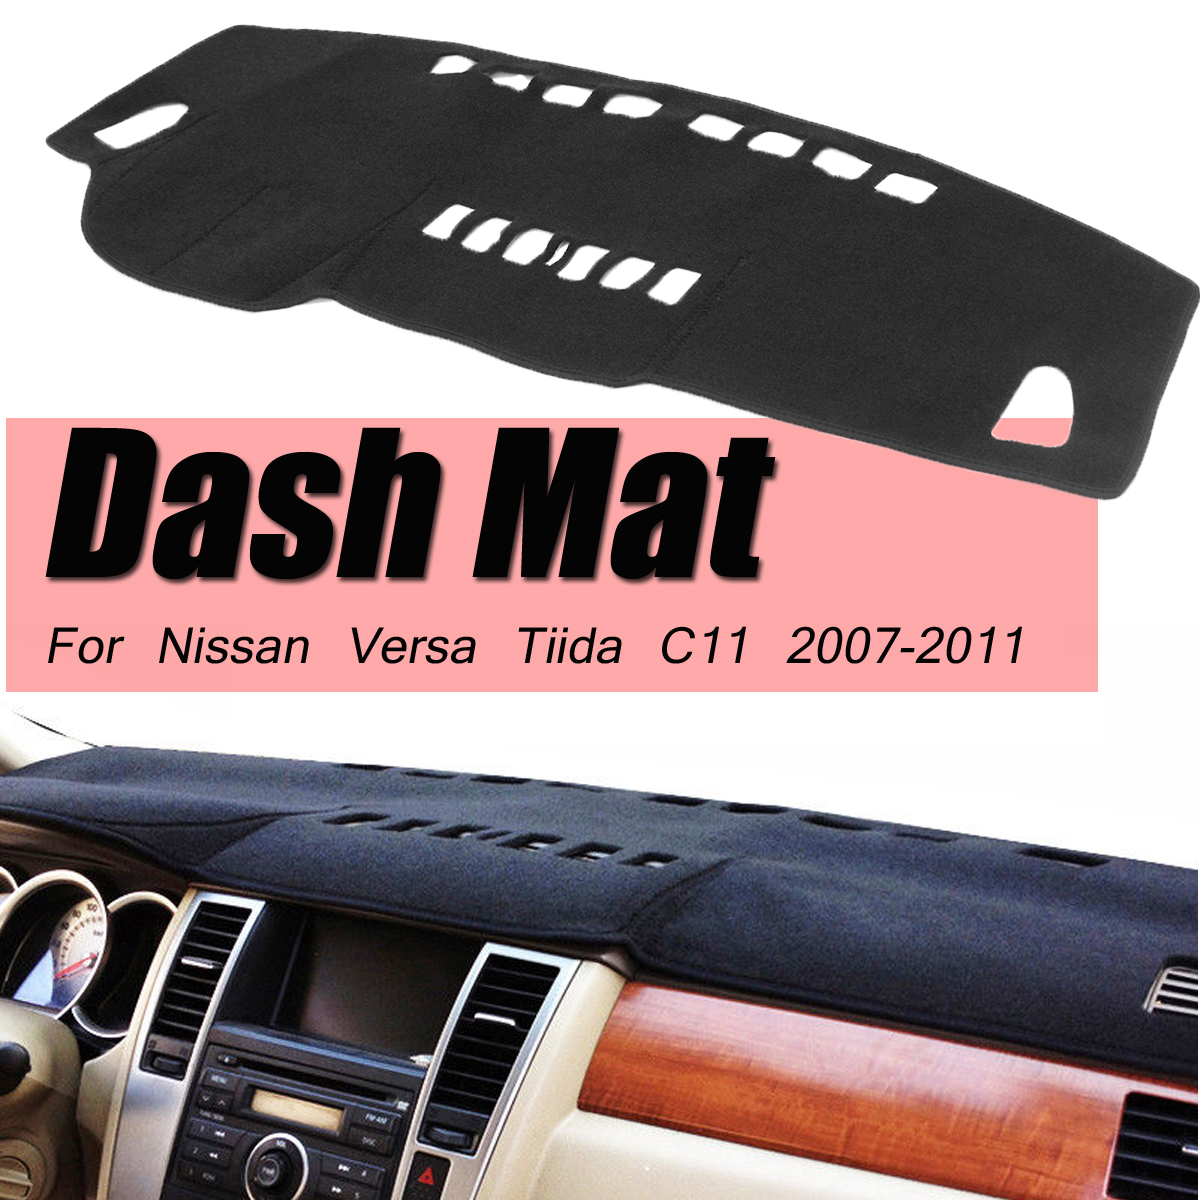 For Nissan Tiida Versa C11 Hatchback Rca Aux Wired Or Wireless Latio Wiring Diagram Dashboard Cover Pad 2007 2008 2009 2010 2011 Dashmat Anti